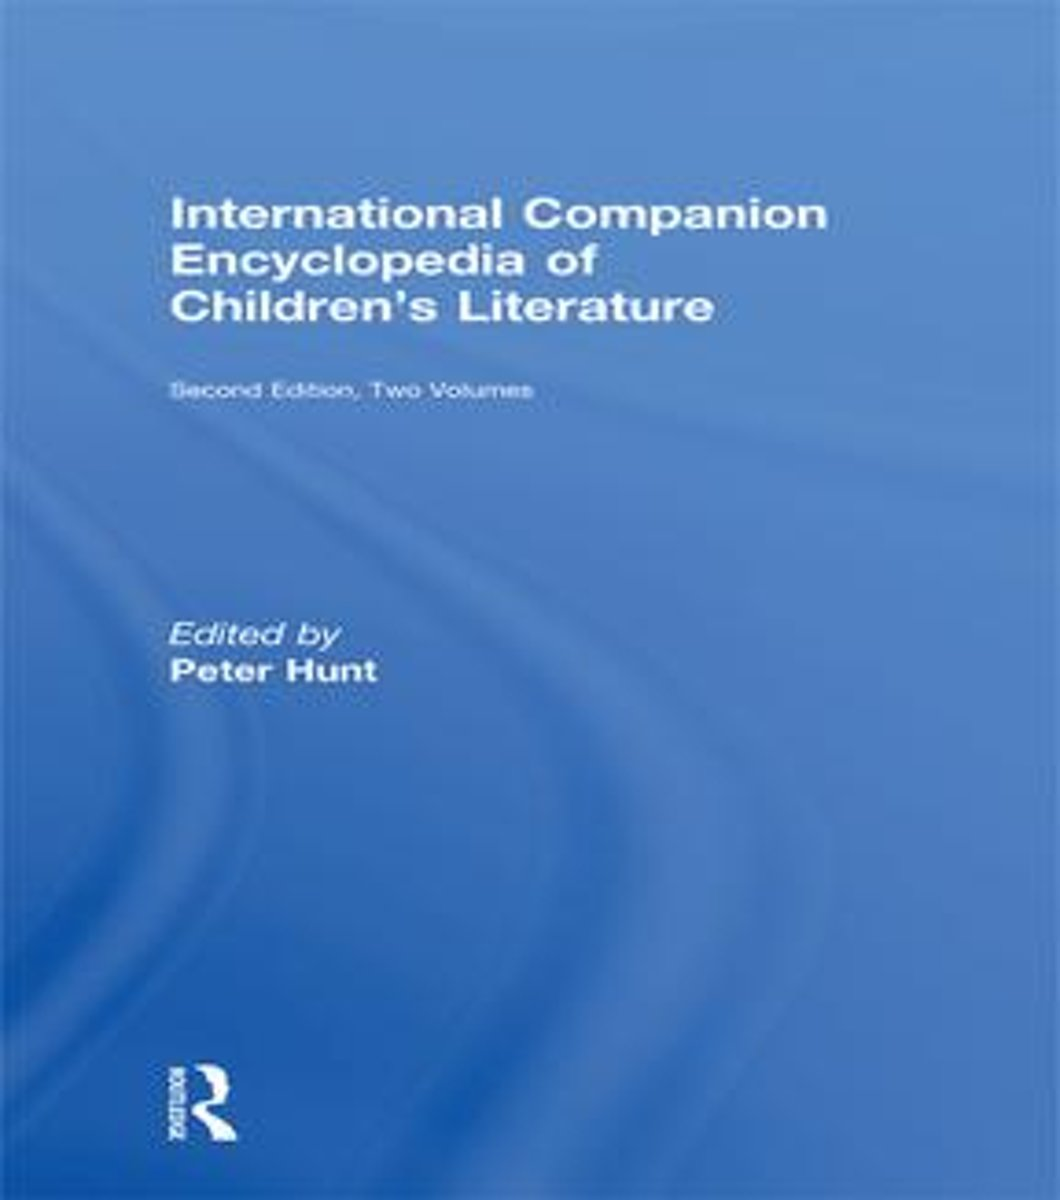 International Companion Encyclopedia of Children's Literature